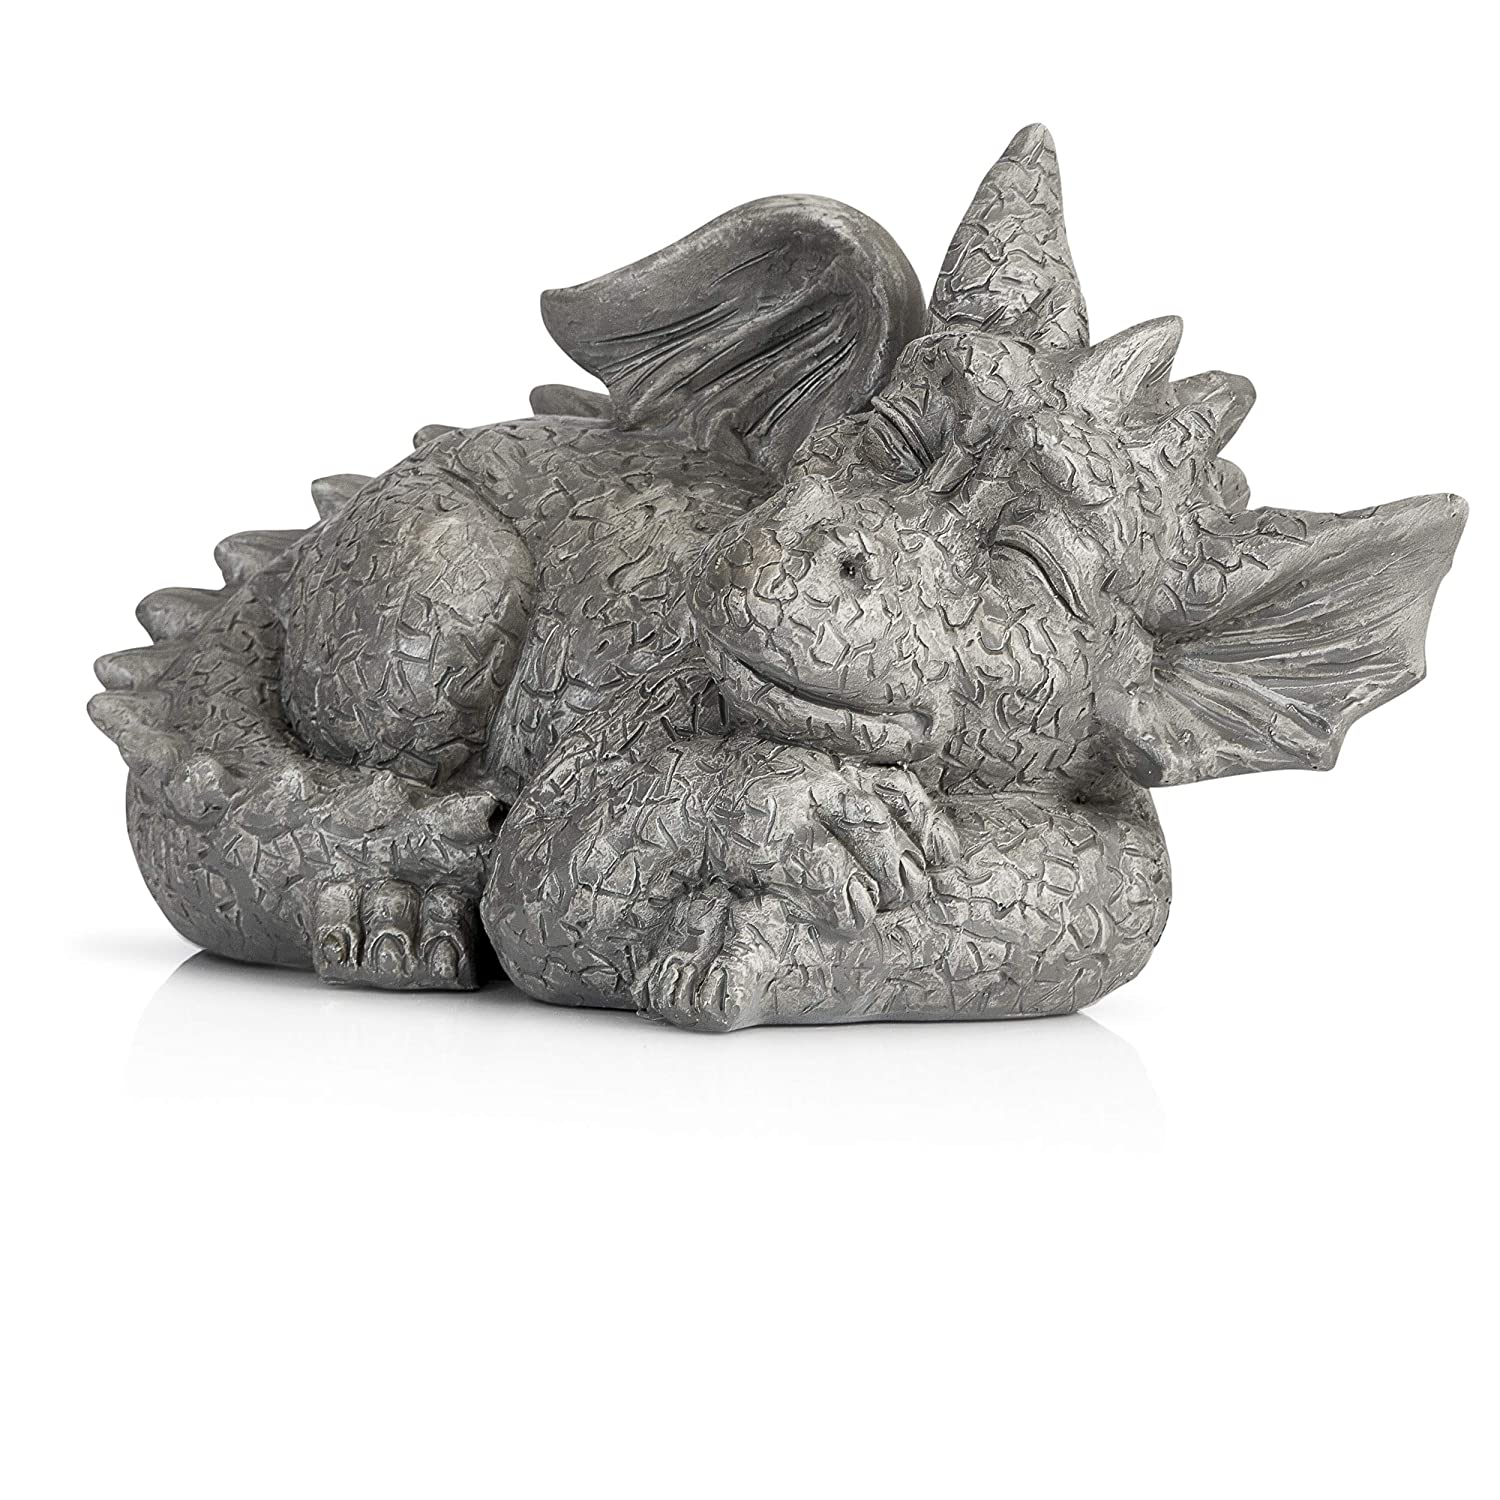 Besti Decorative Outdoor Dragon Garden Statue - Cold Cast Ceramic Statue | Lawn and Yard Decoration | Weather-Resistant Finish (Facing Right)